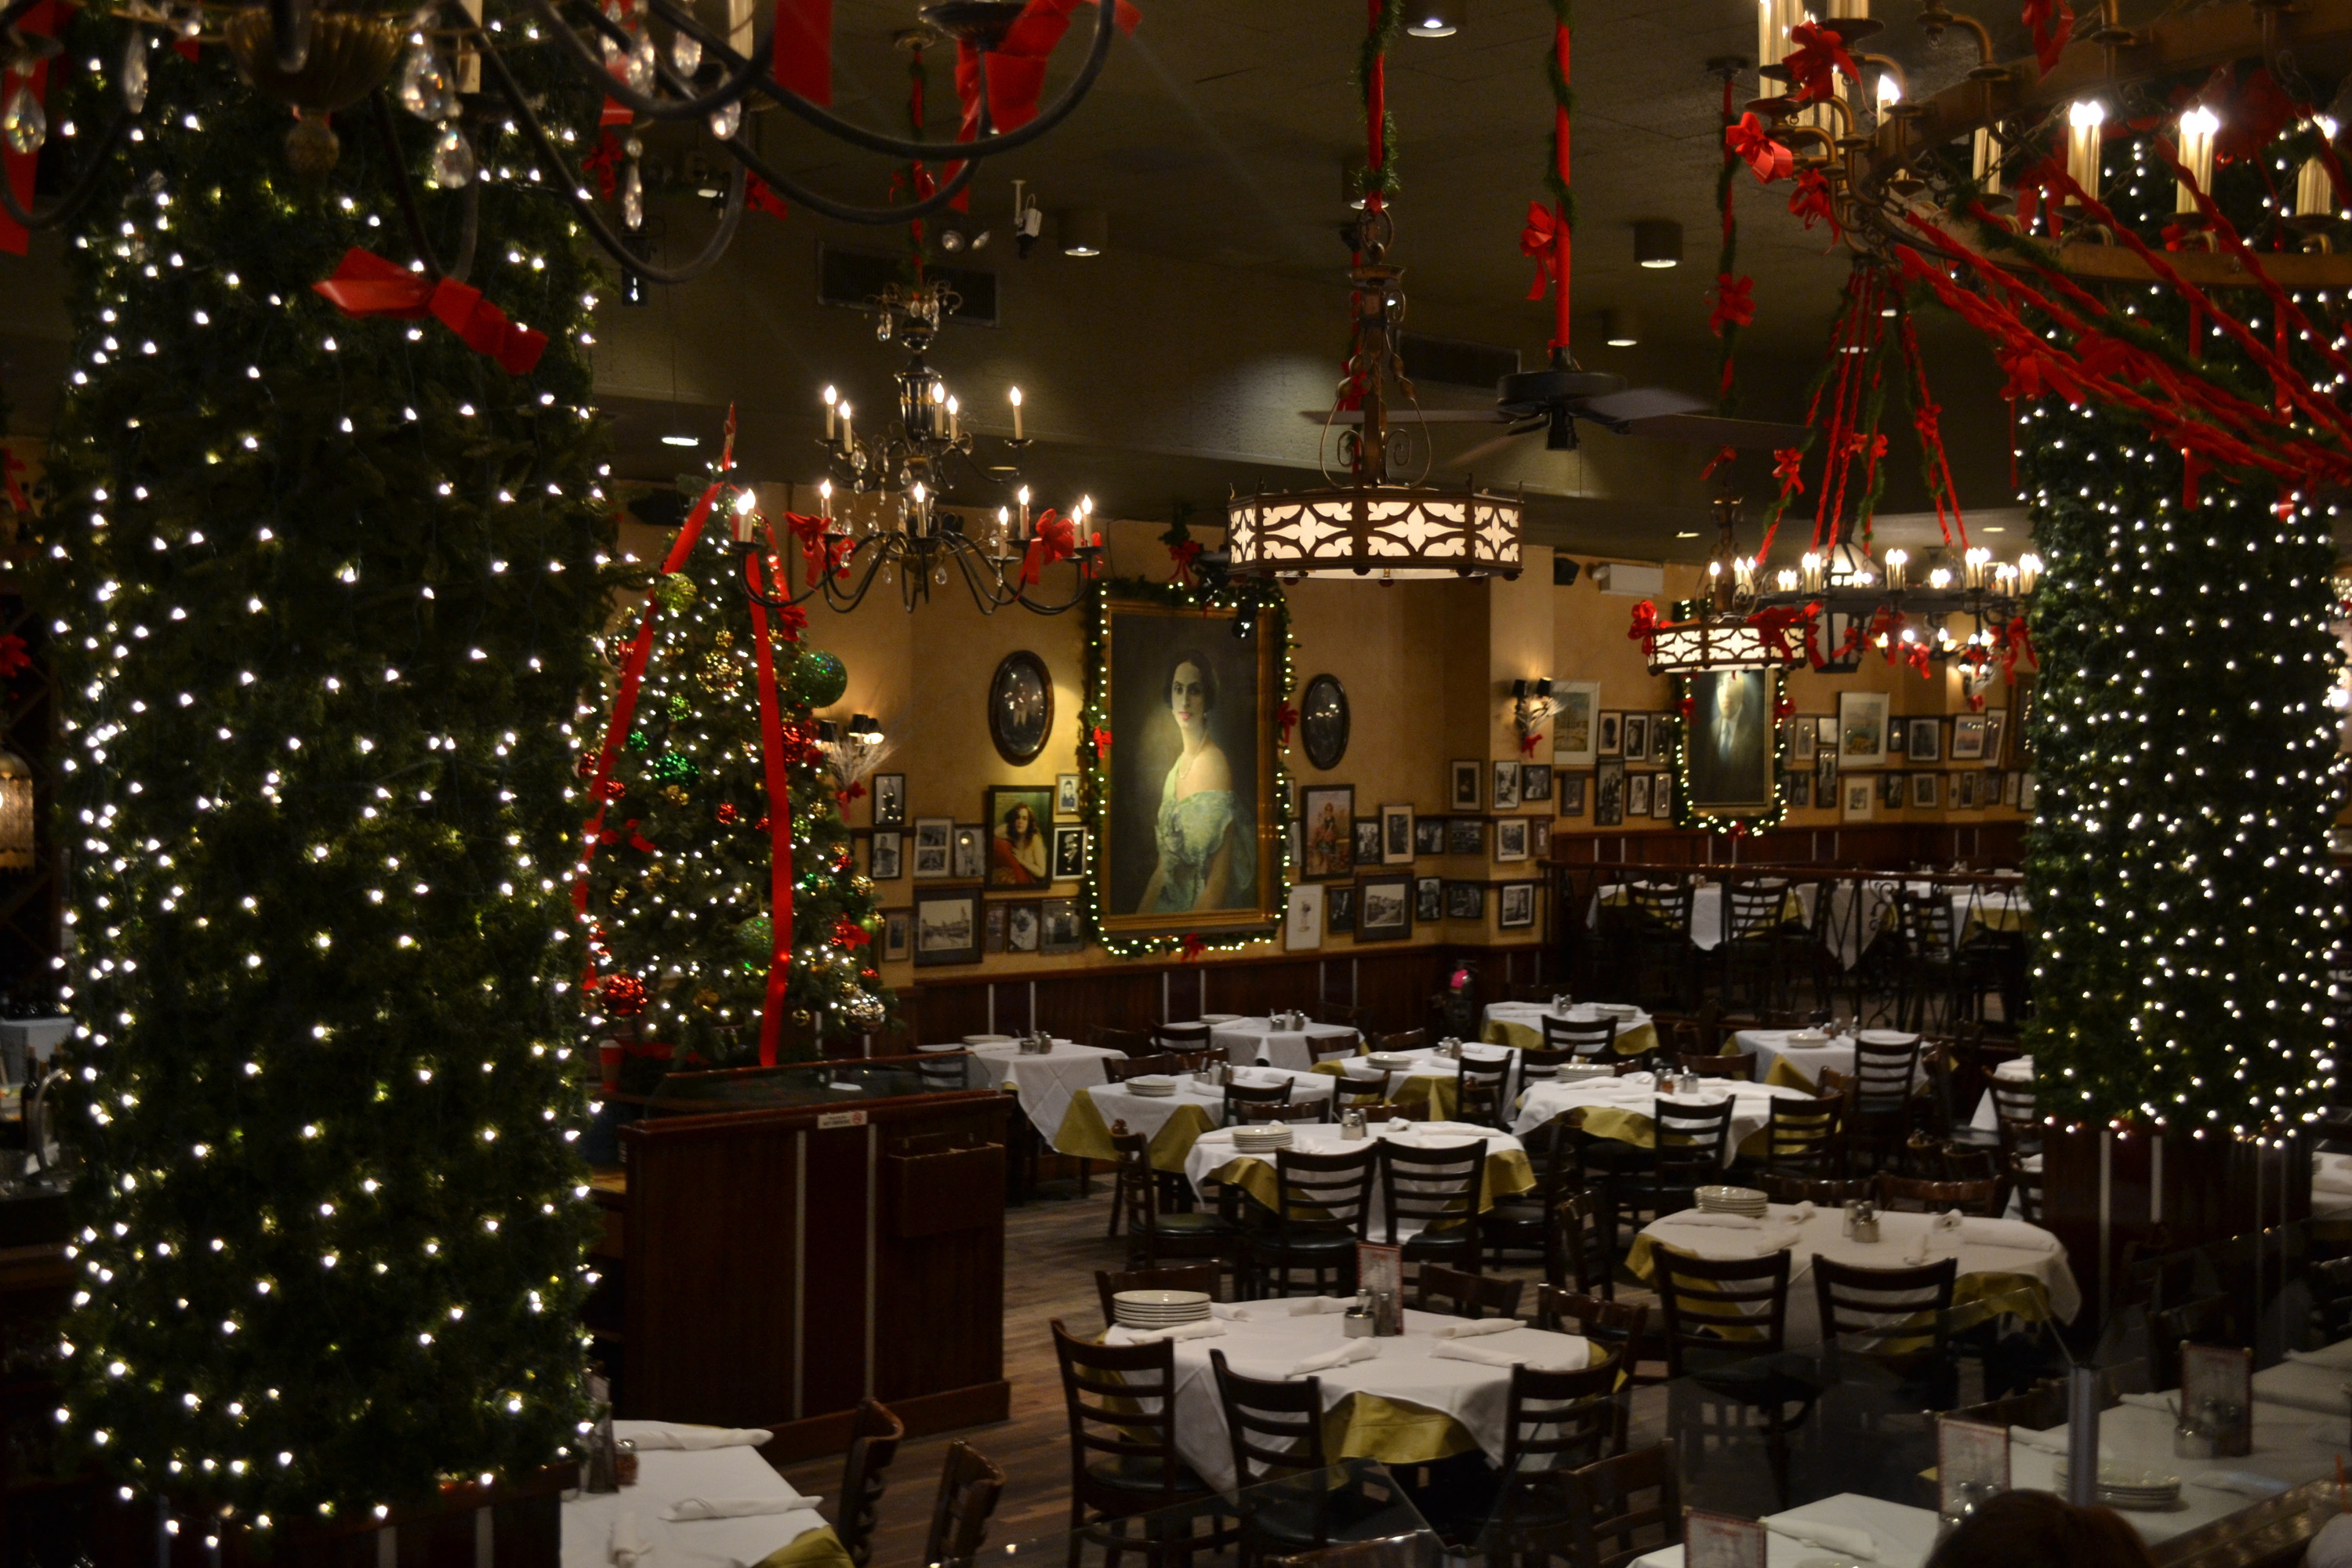 Christmas Dinner Nyc  14 Spots to Eat Christmas Dinner in NYC This Holiday Season